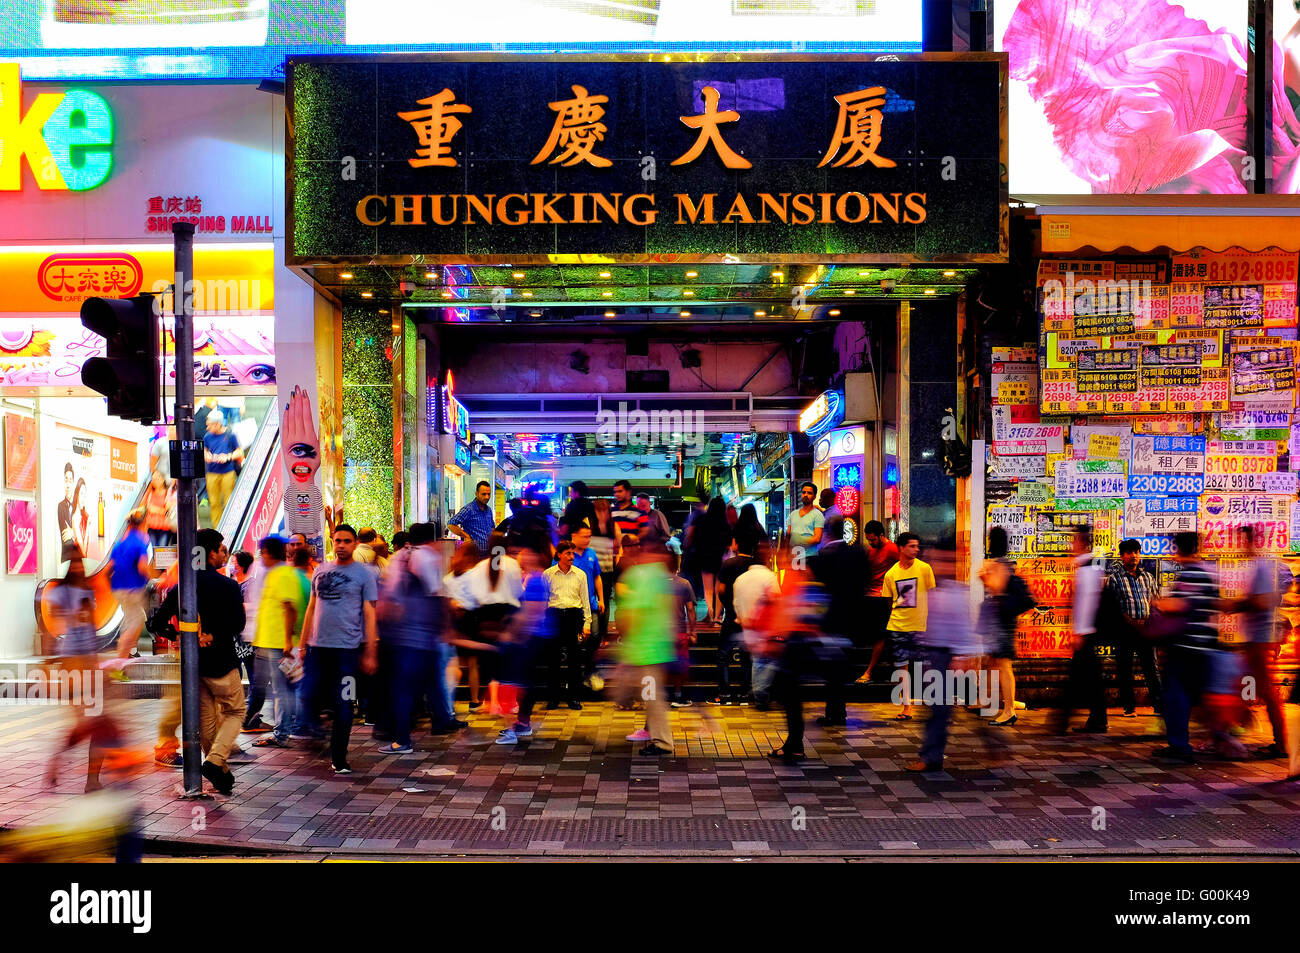 entrance to the famous chungking mansions kowloon hong kong china stock photo royalty free. Black Bedroom Furniture Sets. Home Design Ideas